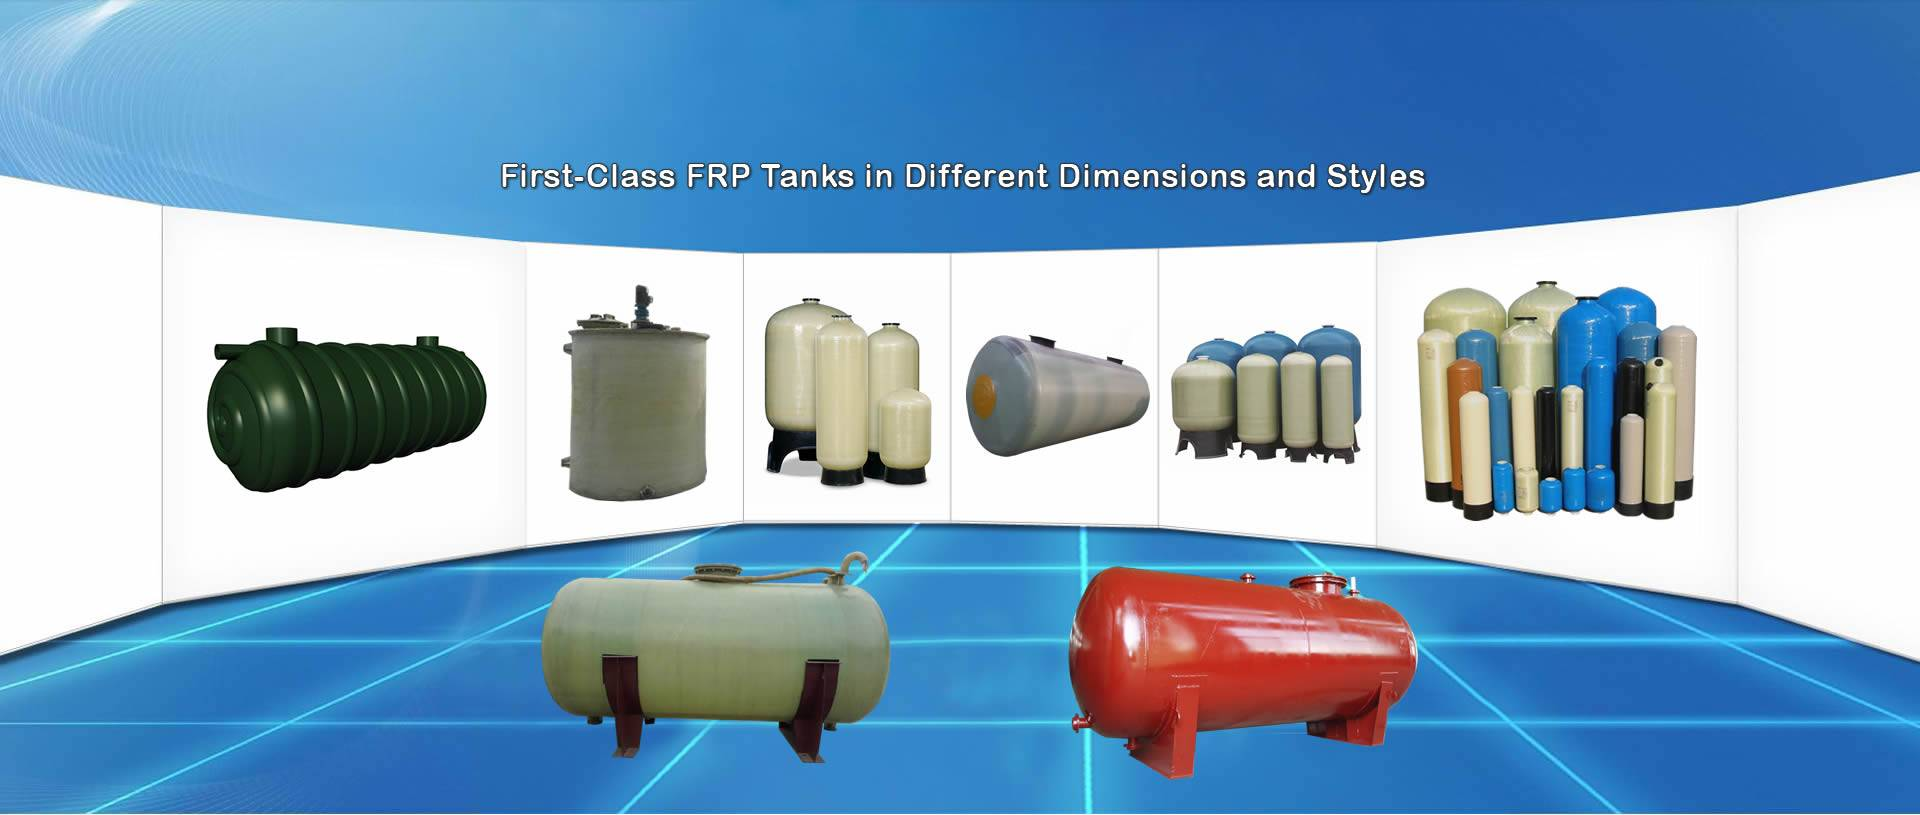 There are all sorts of FRP tanks in different styles and sizes.